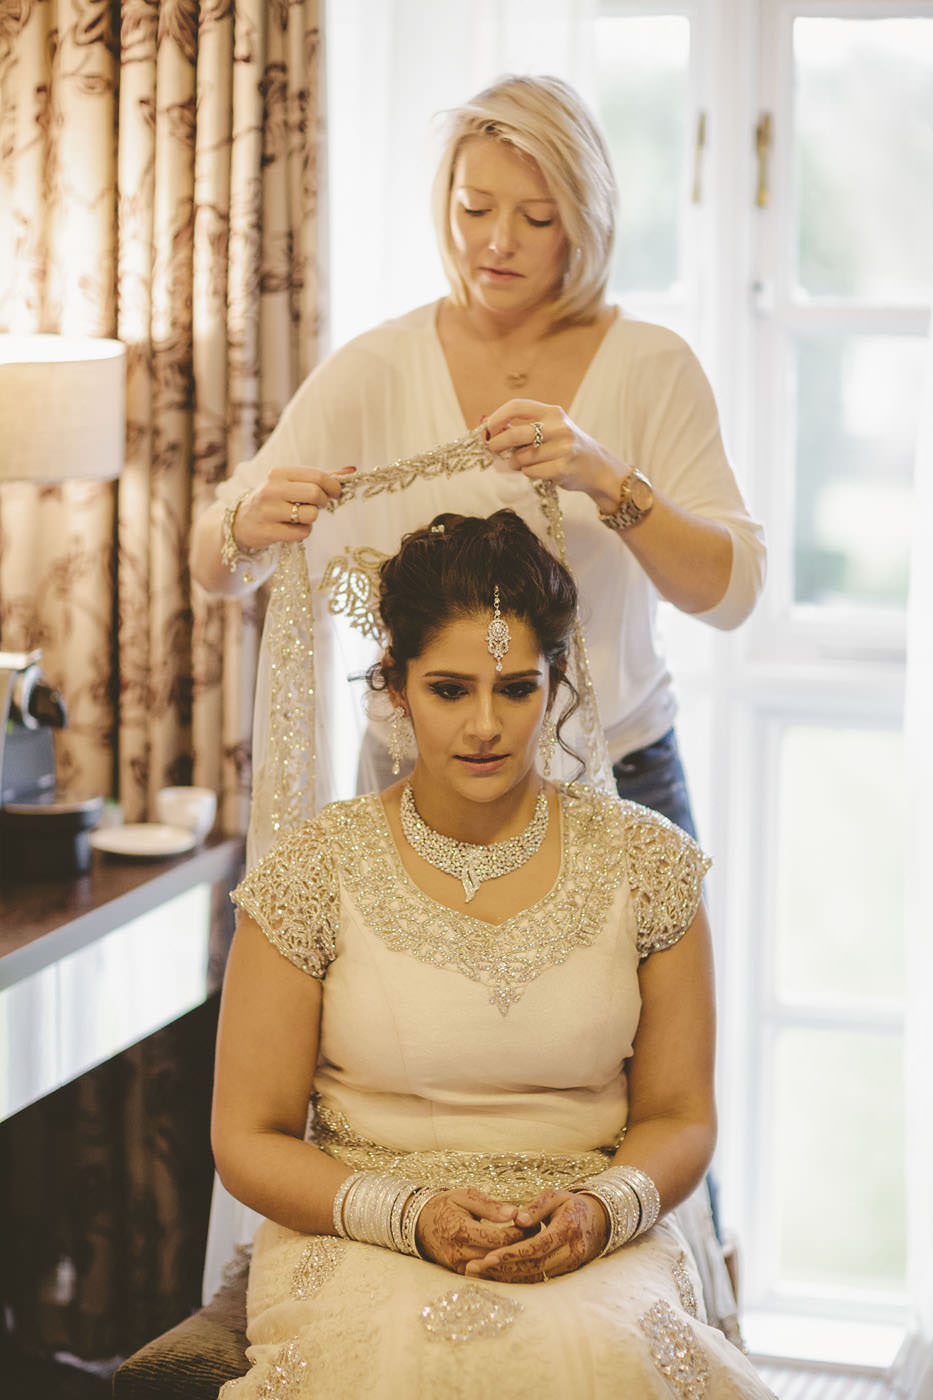 edmundjasveen burford bridge hotel wedding photographer 0027